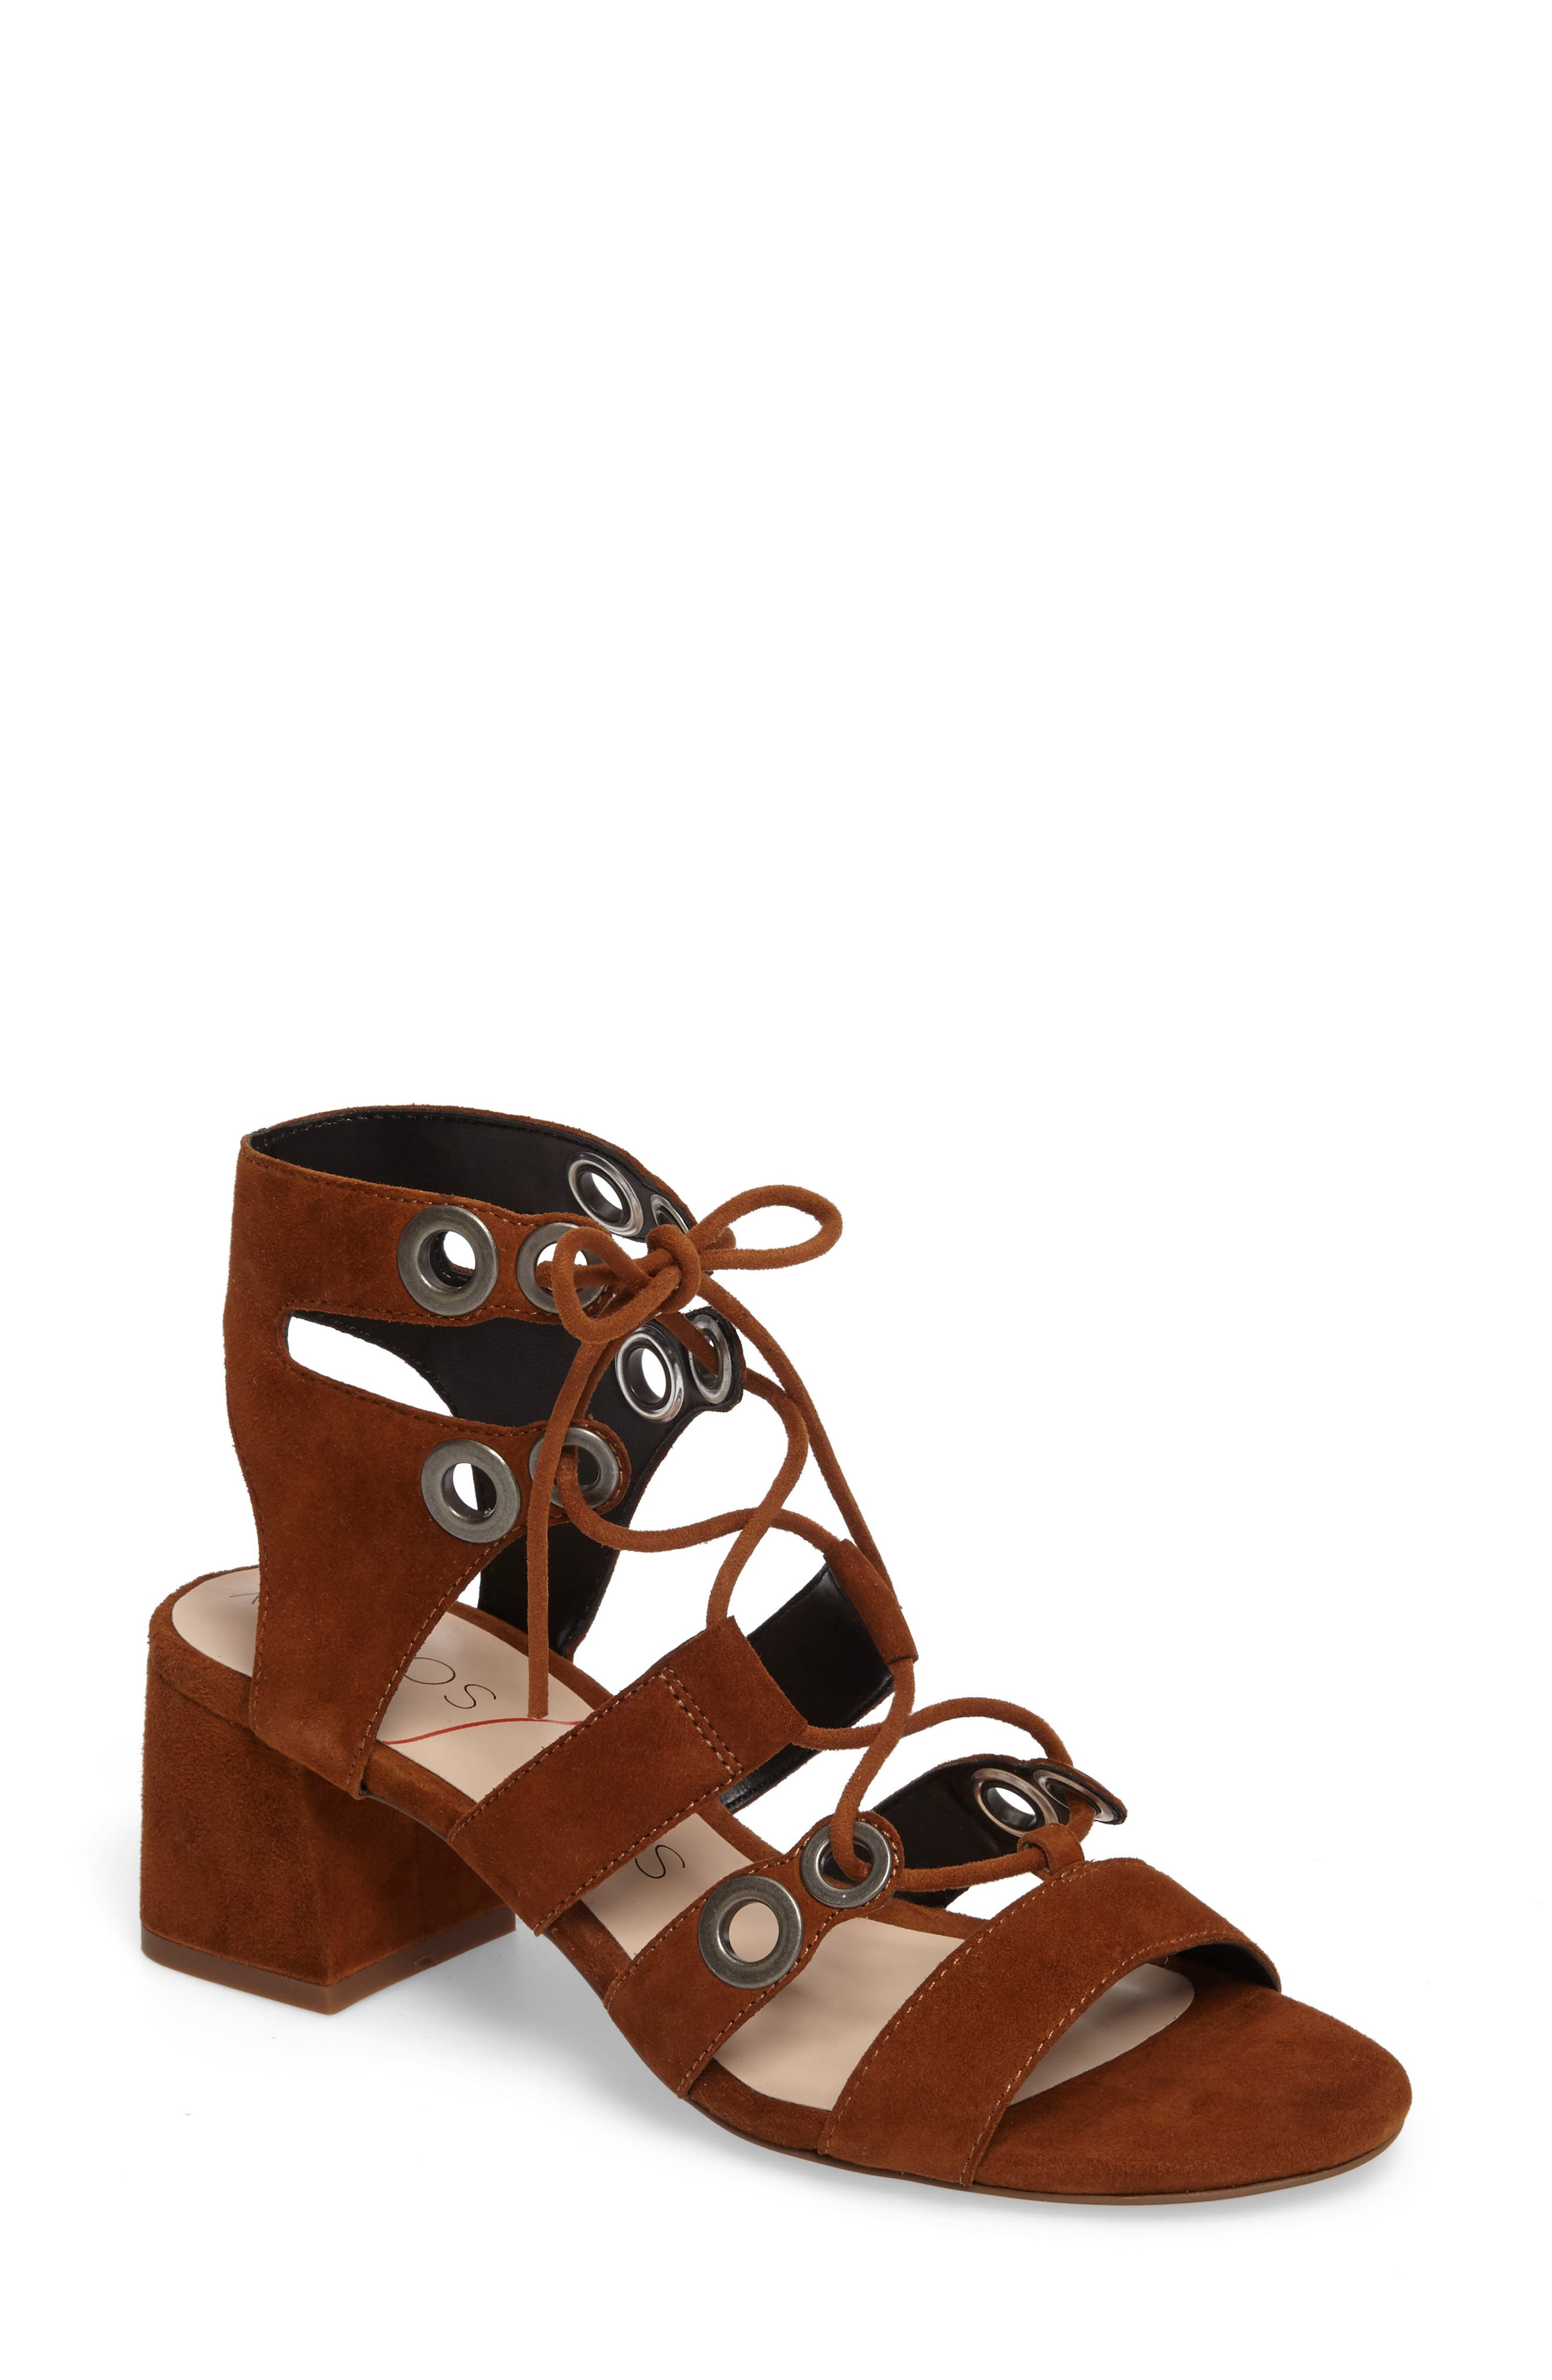 Alternate Image 1 Selected - Sole Society Rosemary Lace-Up Sandal (Women)